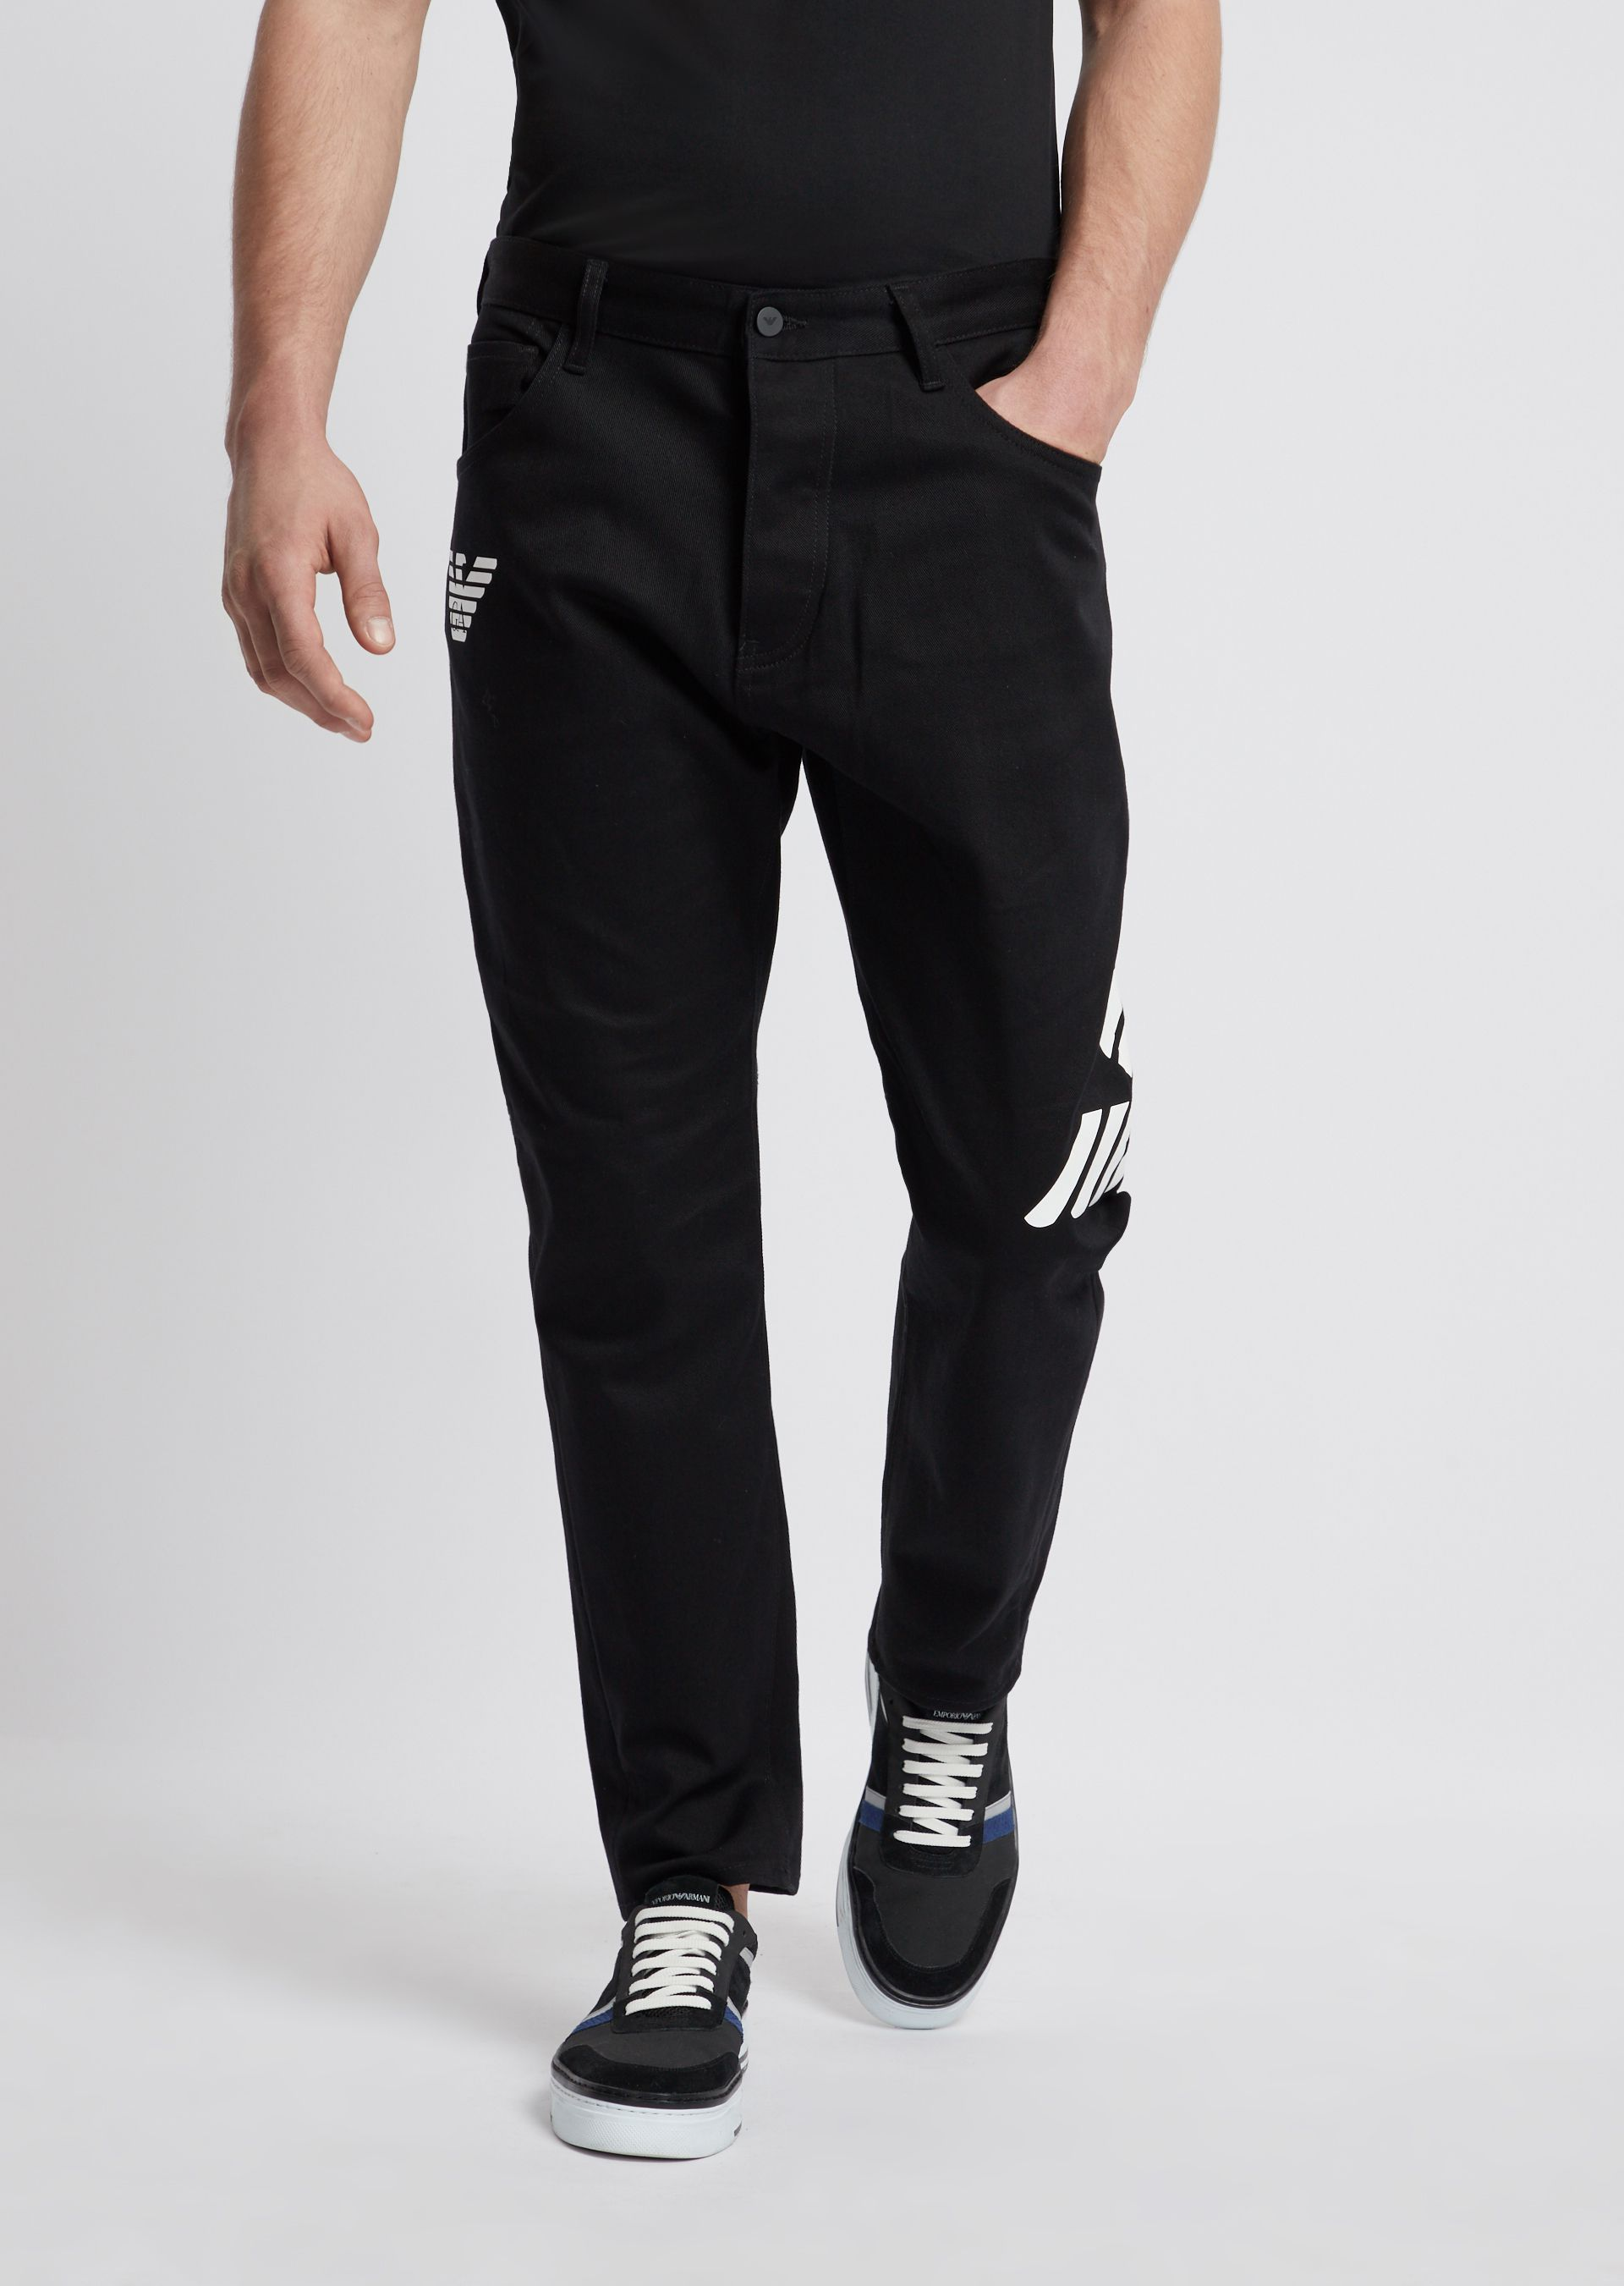 c69510ddd4 Loose fit J04 stretch bull cotton jeans with logo prints